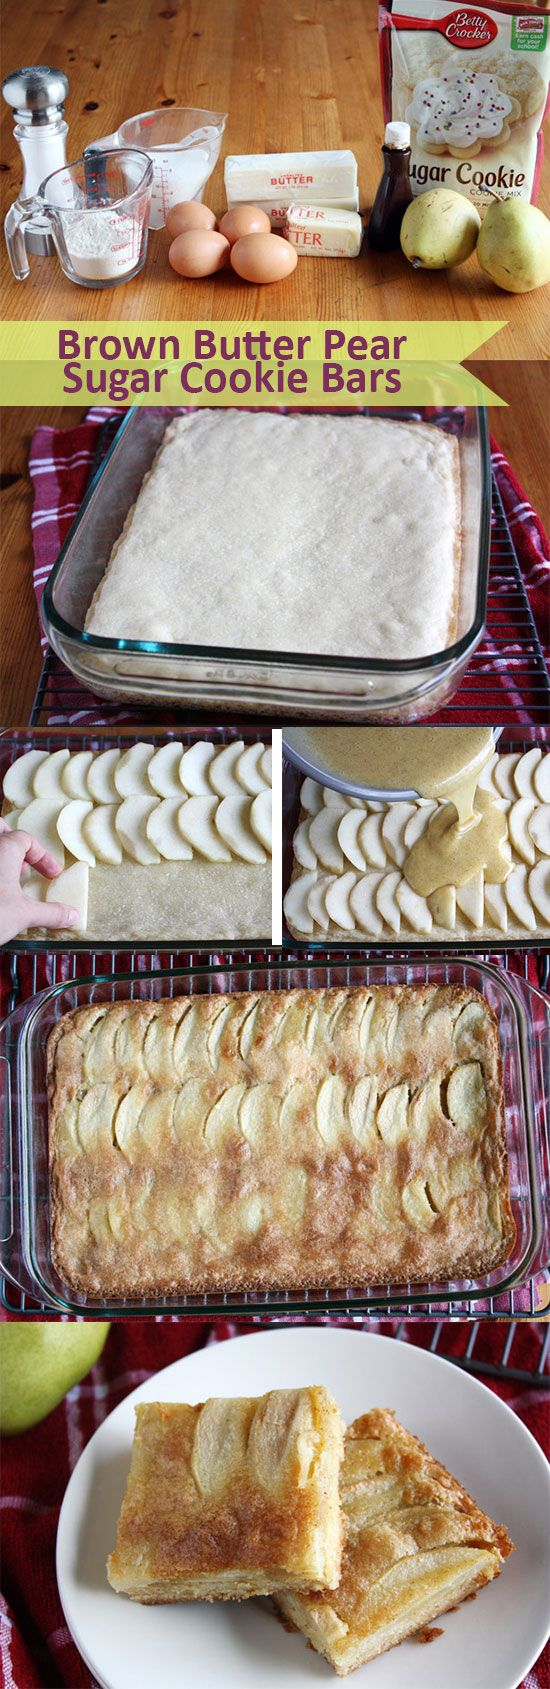 """Browned butter adds a yummy, nutty flavor to these """"pear-fect"""" sugar cookie-crust bars. If you have extra fresh pears on hand, this is a great way to use up the ripe ones. Click through for the step-by-step photos and instructions!"""